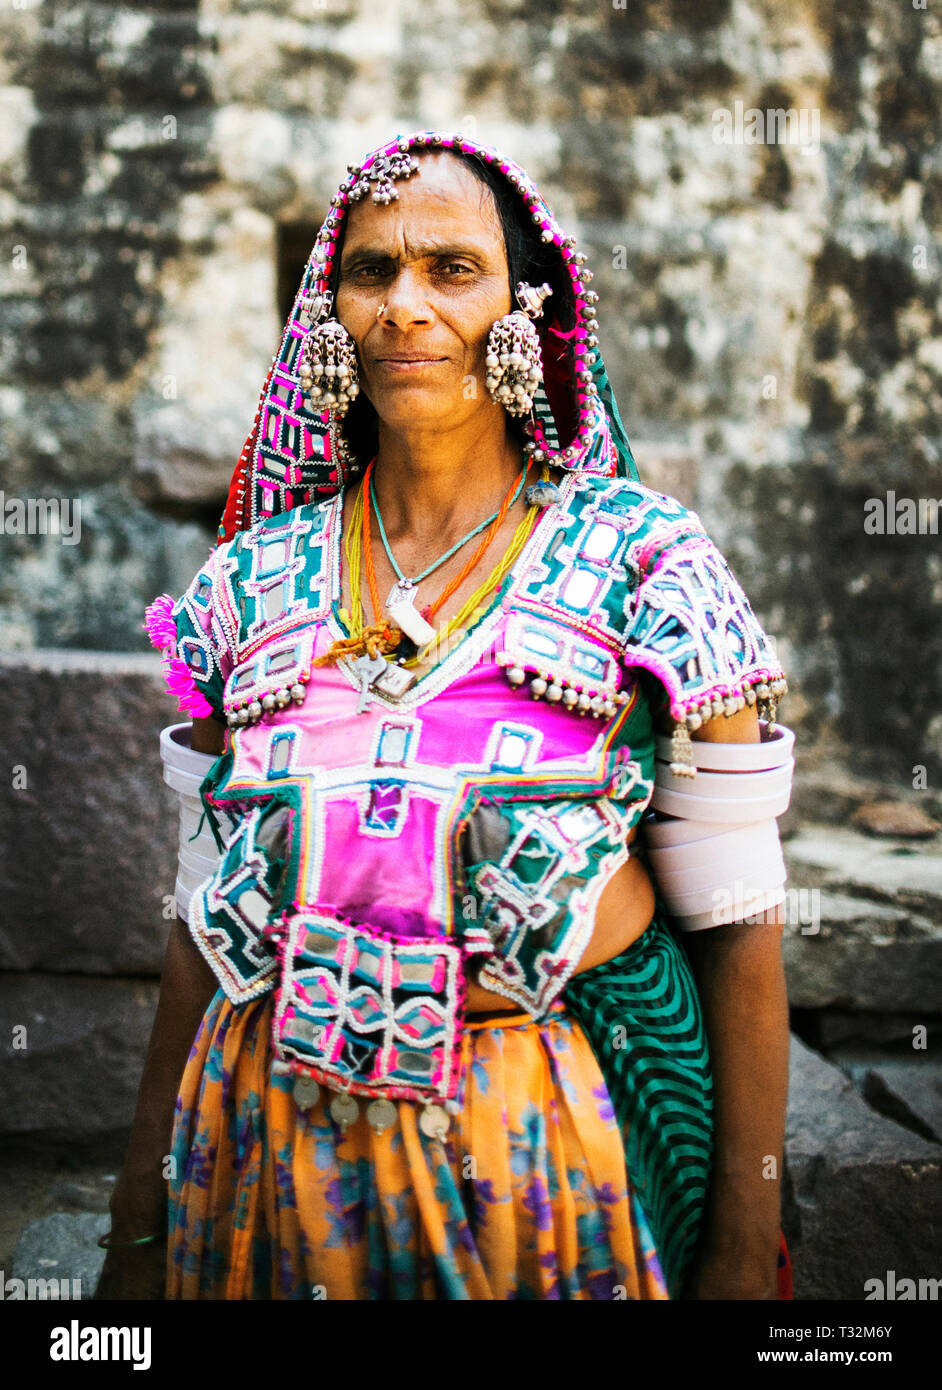 A woman dressed traditionally at Golconda Fort in Hyderabad, India - Stock Image